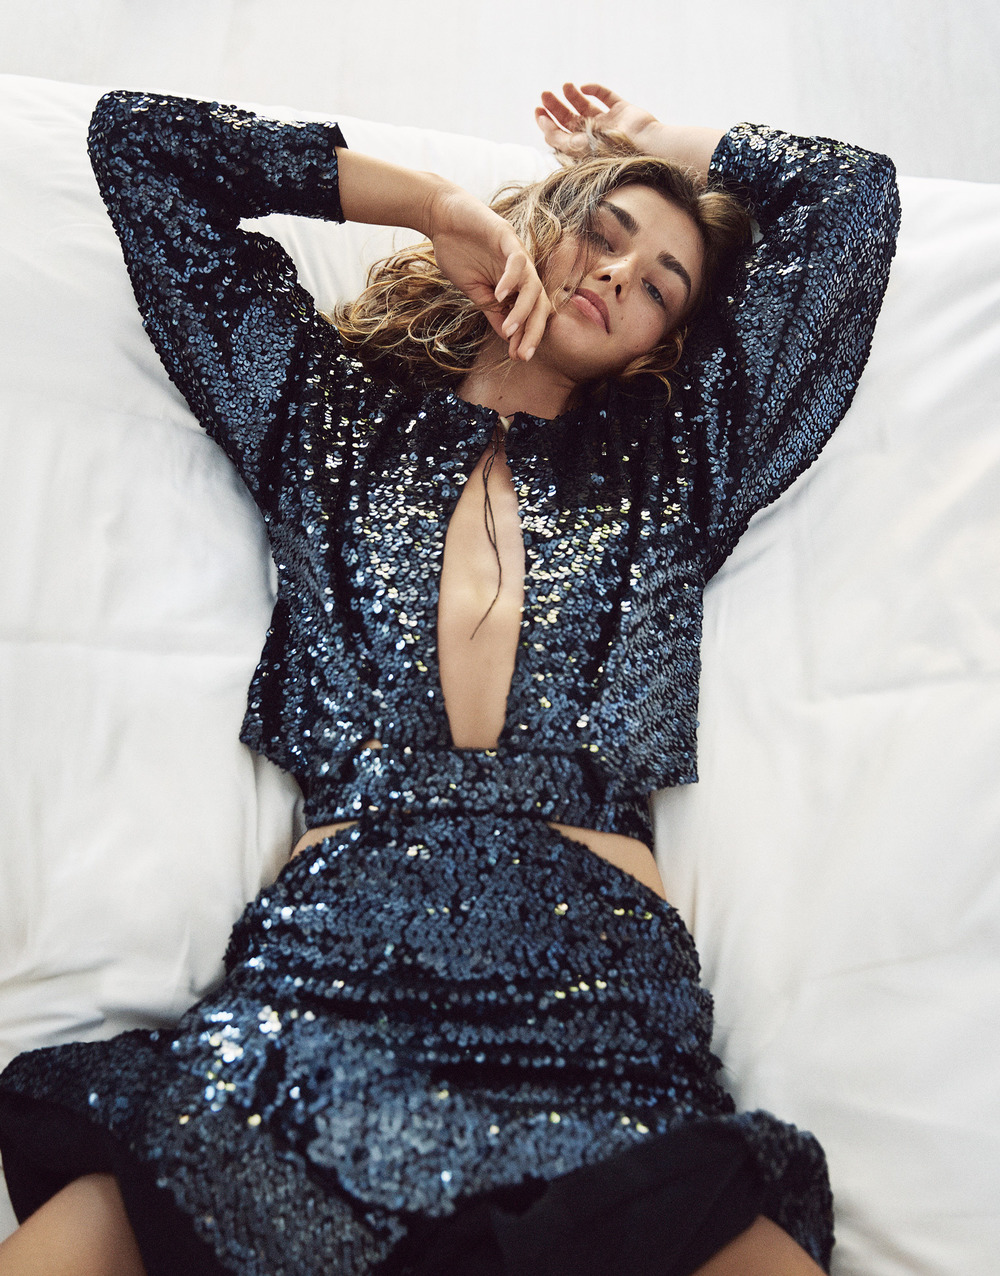 6ee9a-andreea-diaconu-by-cass-bird-for-porter-magazine-summer-escape-2015-7.jpg